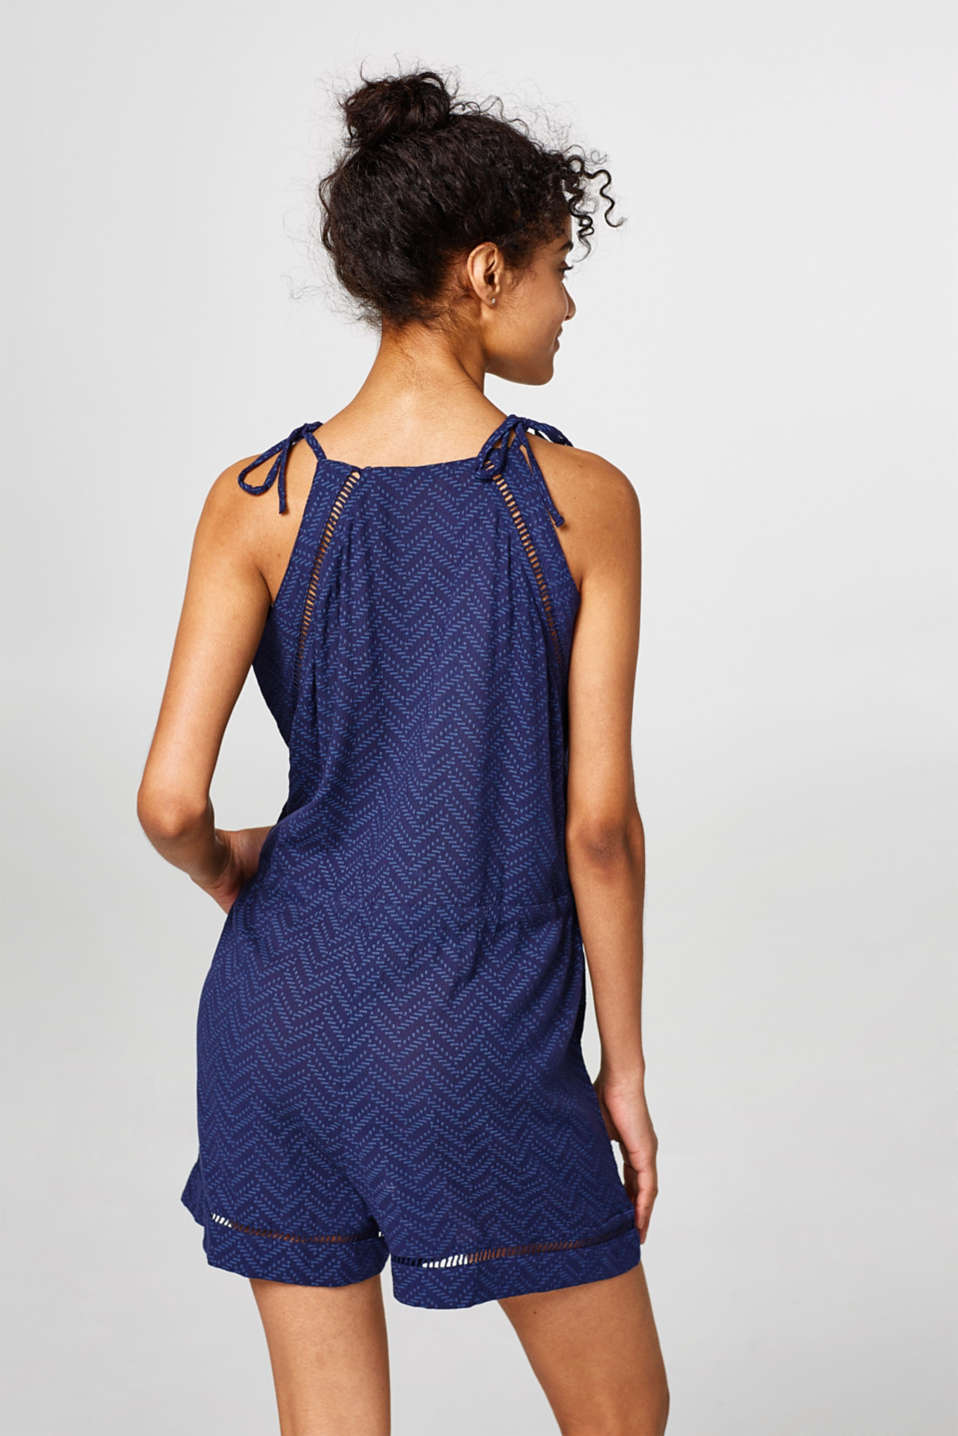 Light jumpsuit with openwork pattern details